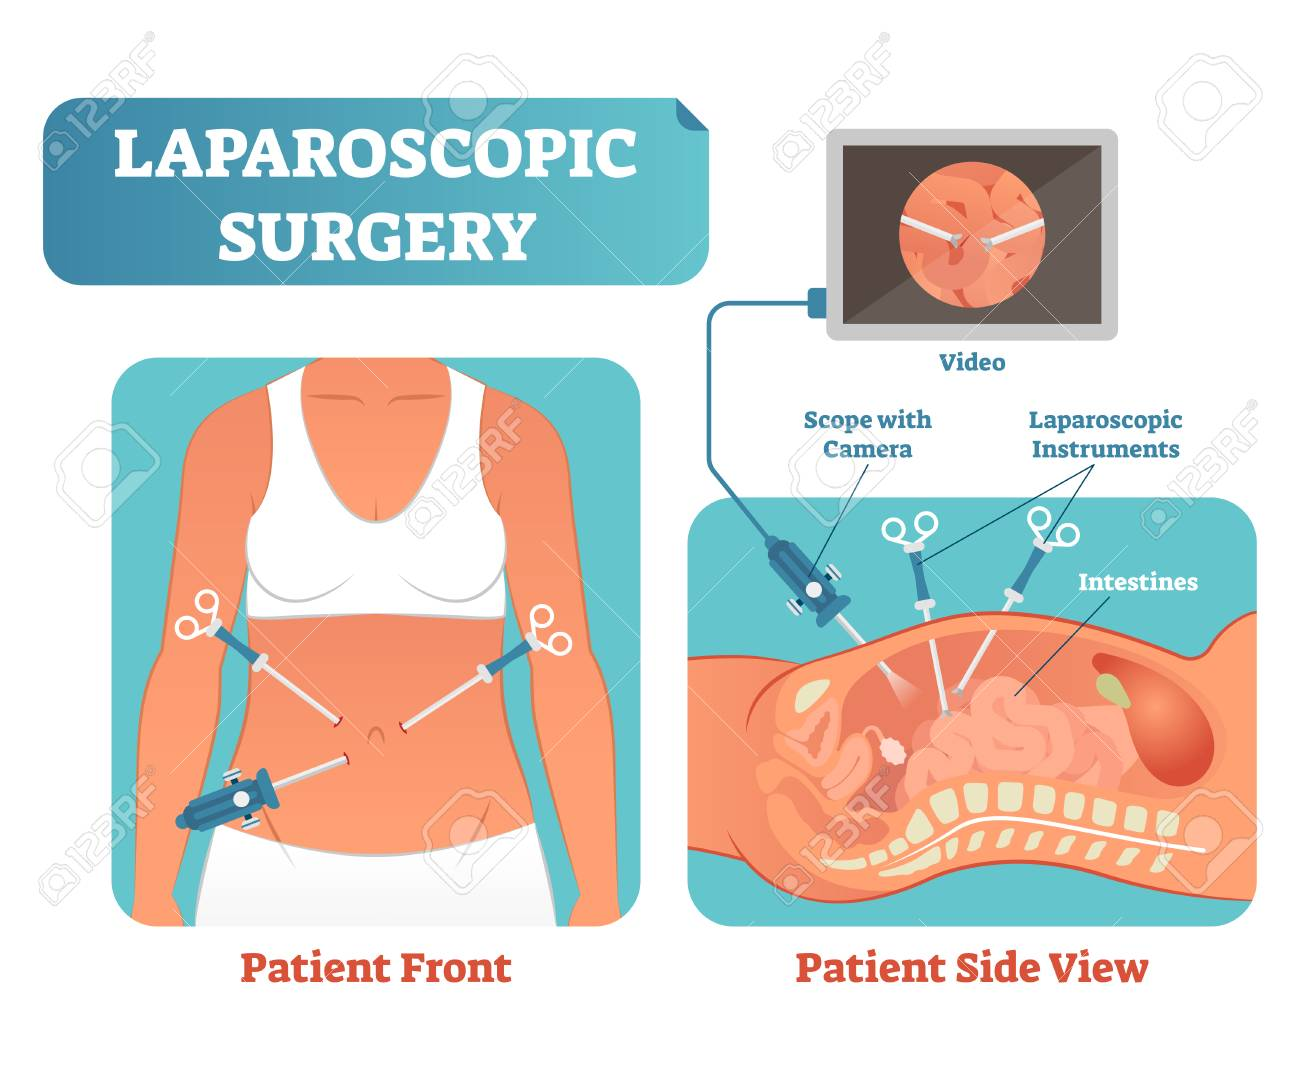 Laparoscopic surgery medical health care surgical procedure process, anatomical cross section vector illustration diagram. Laparoscopy instruments with camera and screen. - 101059224